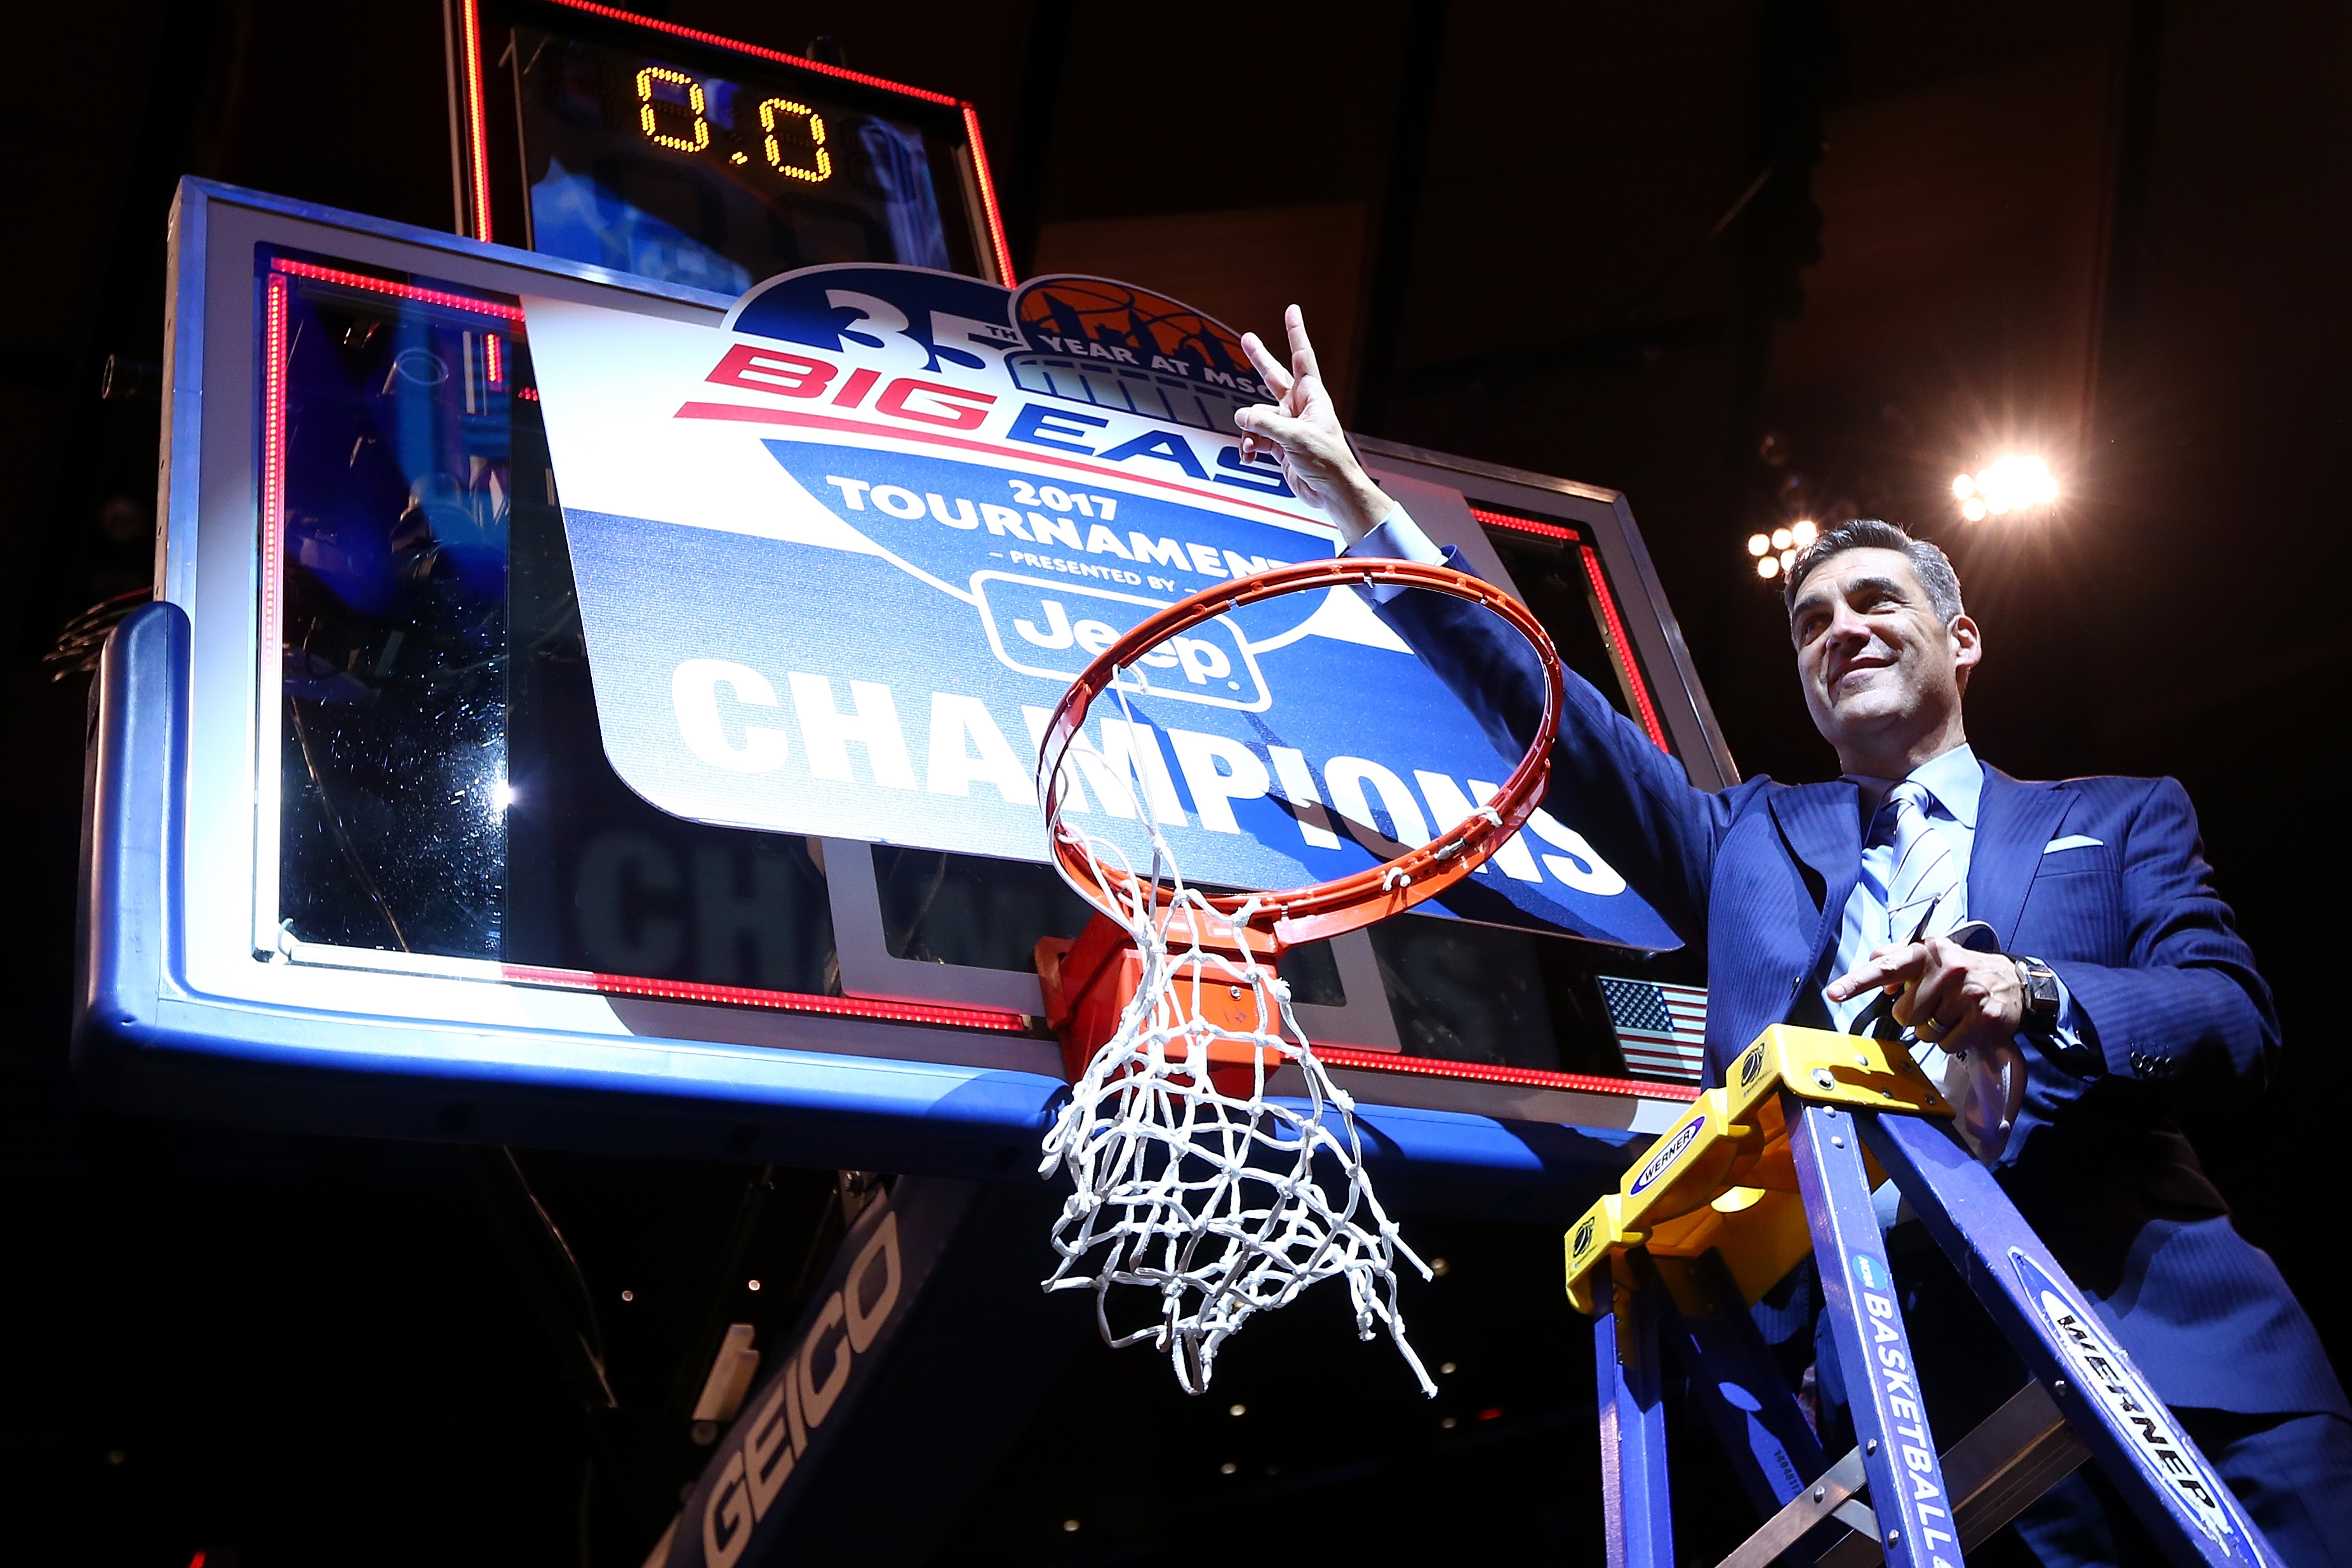 Villanova coach Jay Wright after his teams Big East Tournament win Saturday. (Mike Stobe/Getty Images)